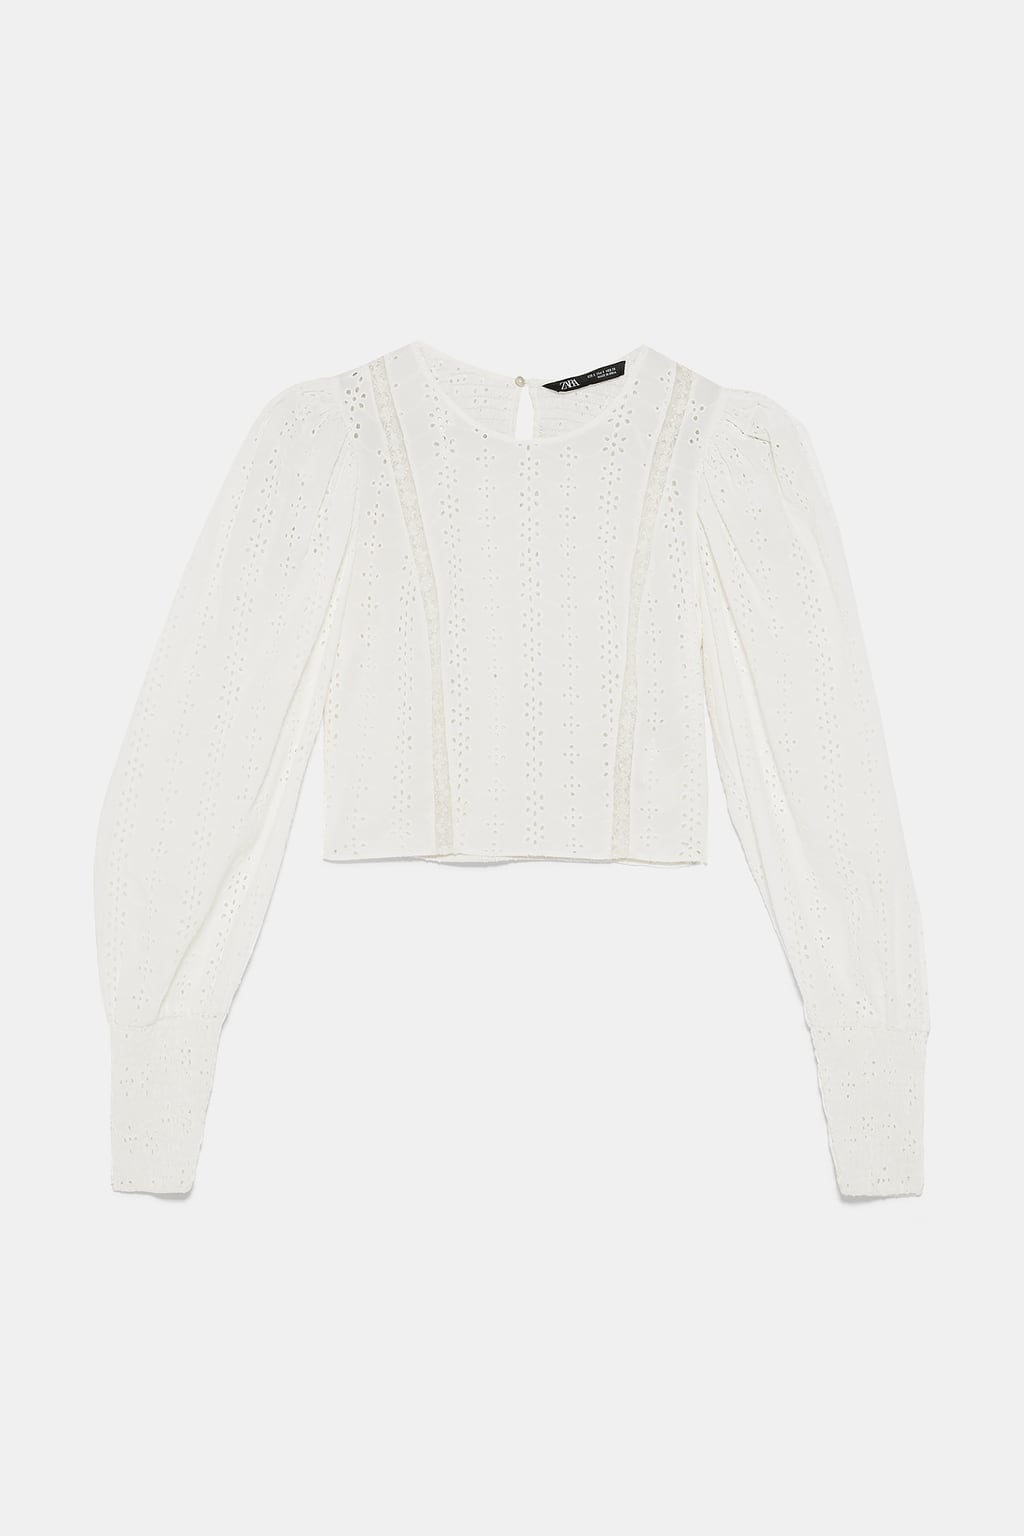 f5fc81a4 SHIRT WITH CONTRASTING CUTWORK EMBROIDERY-TOPS-WOMAN-SALE | ZARA ...